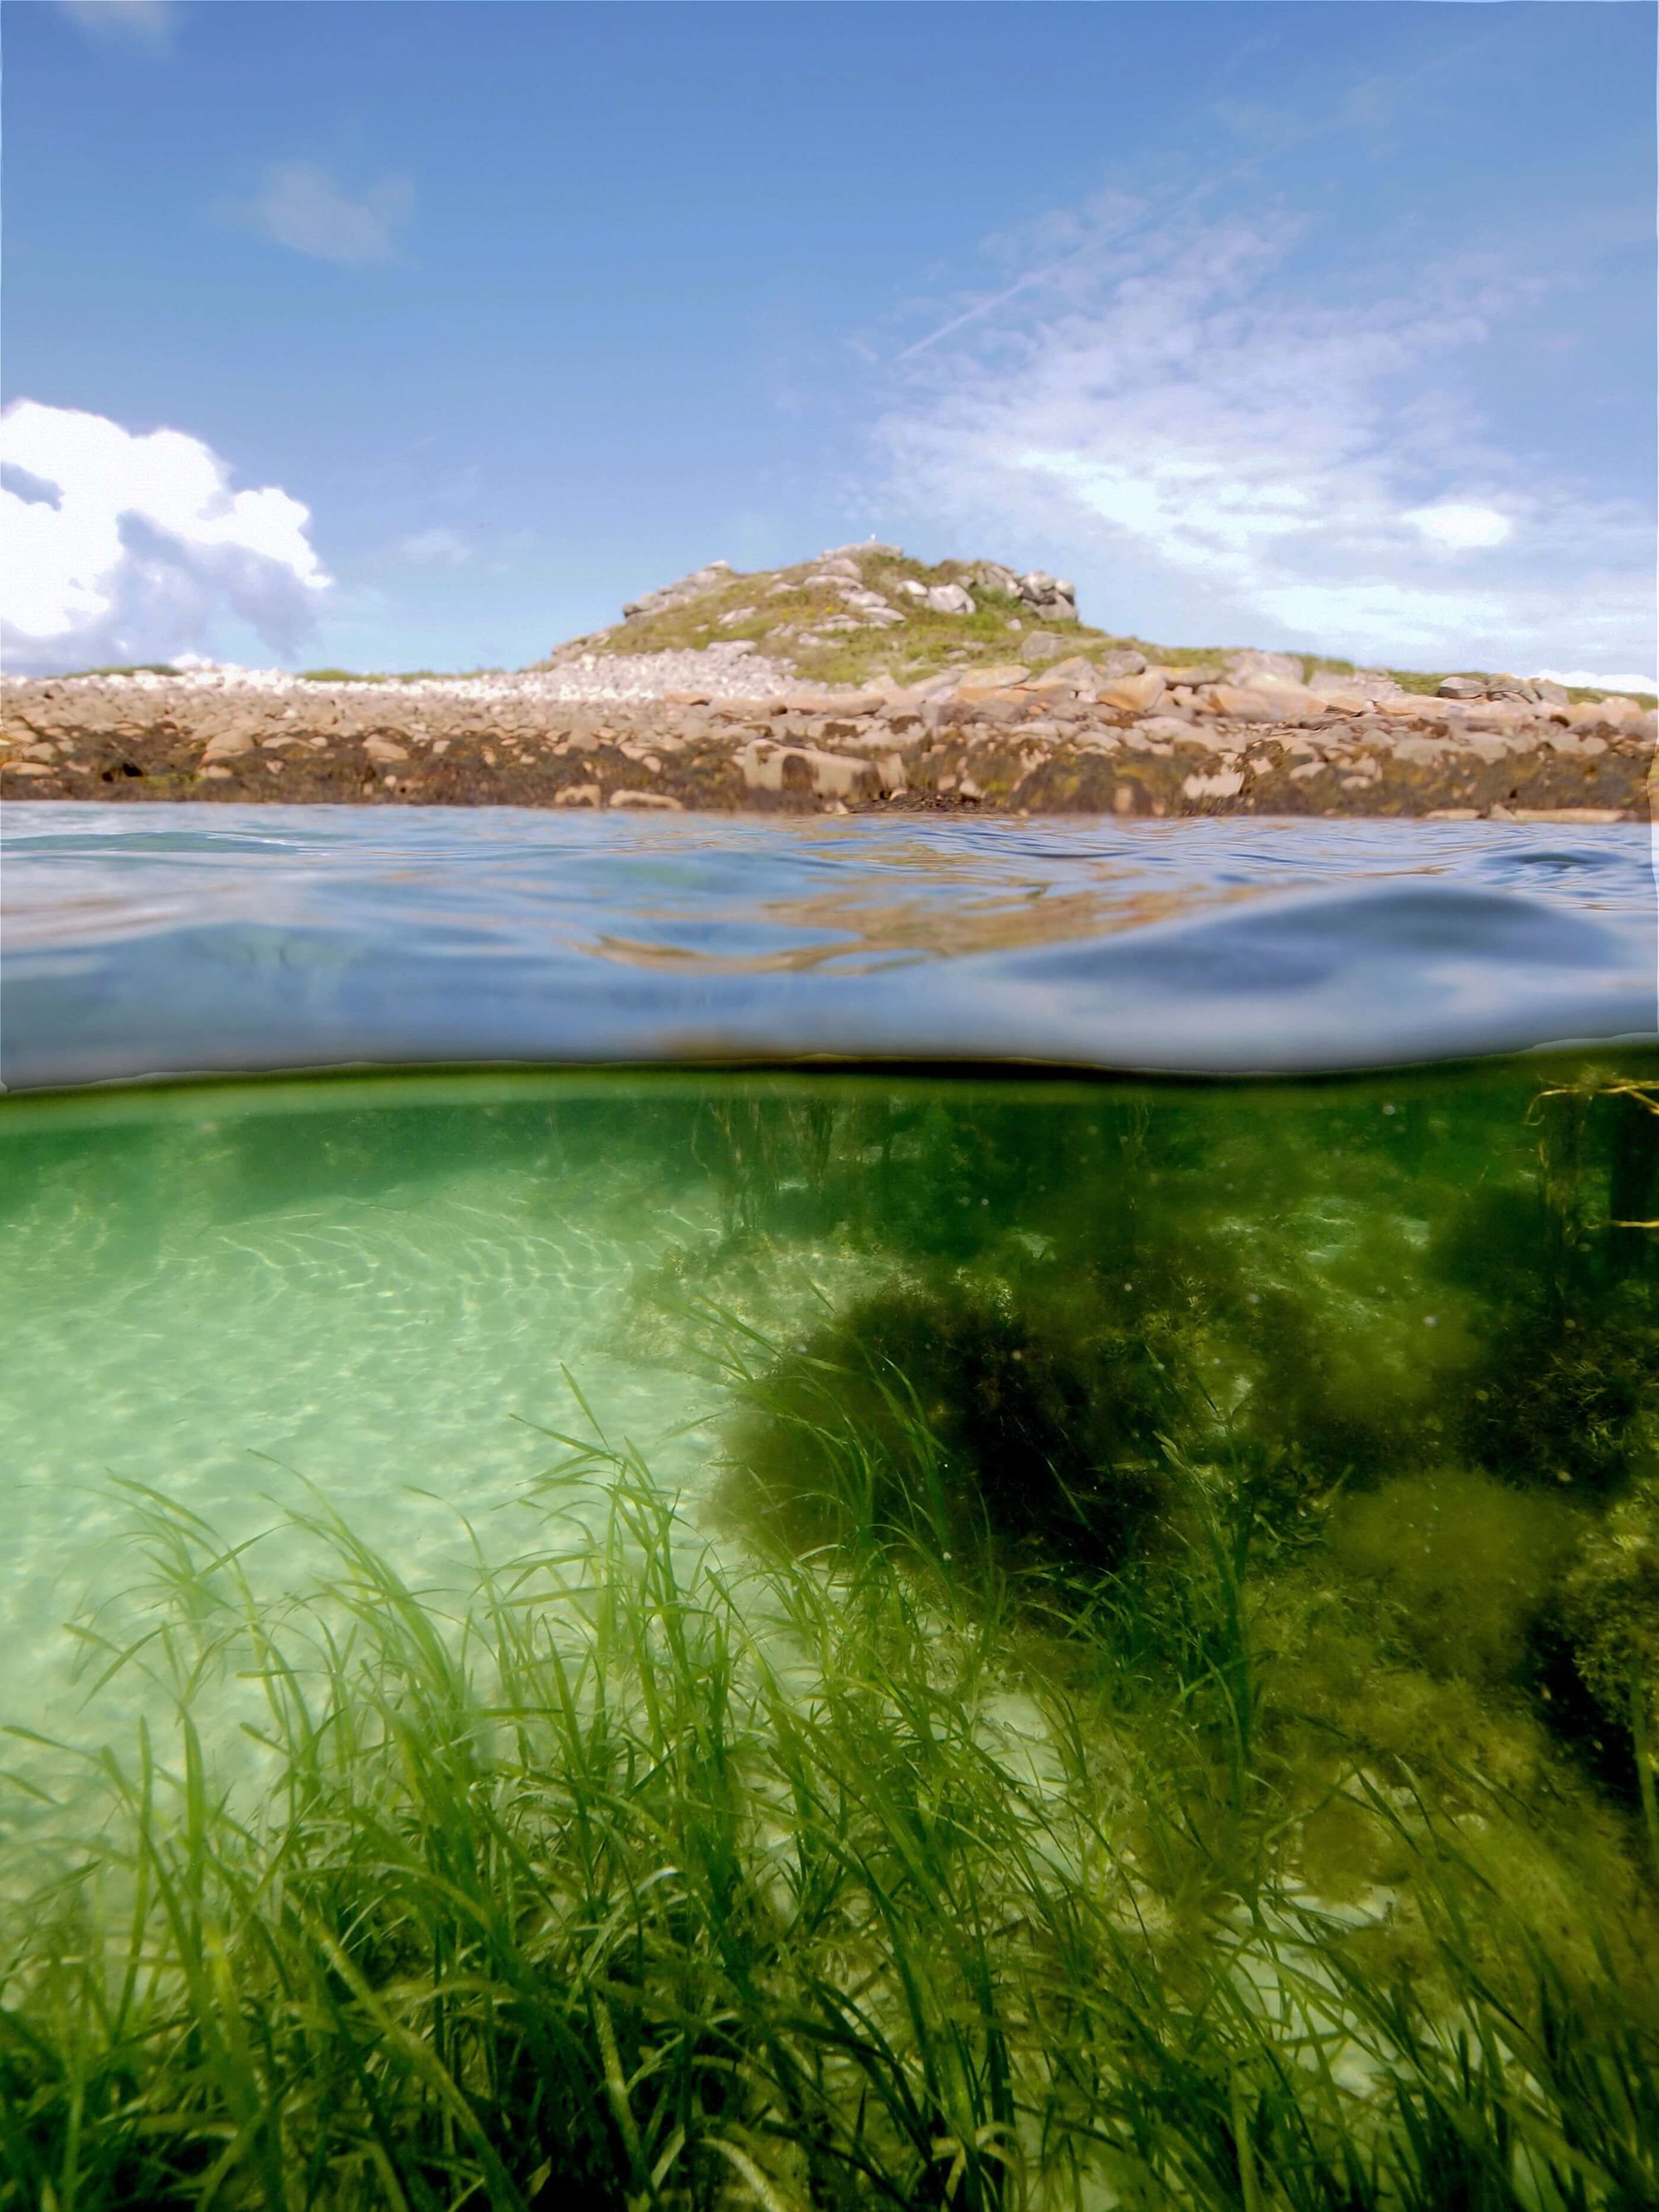 typical shallow water habitat